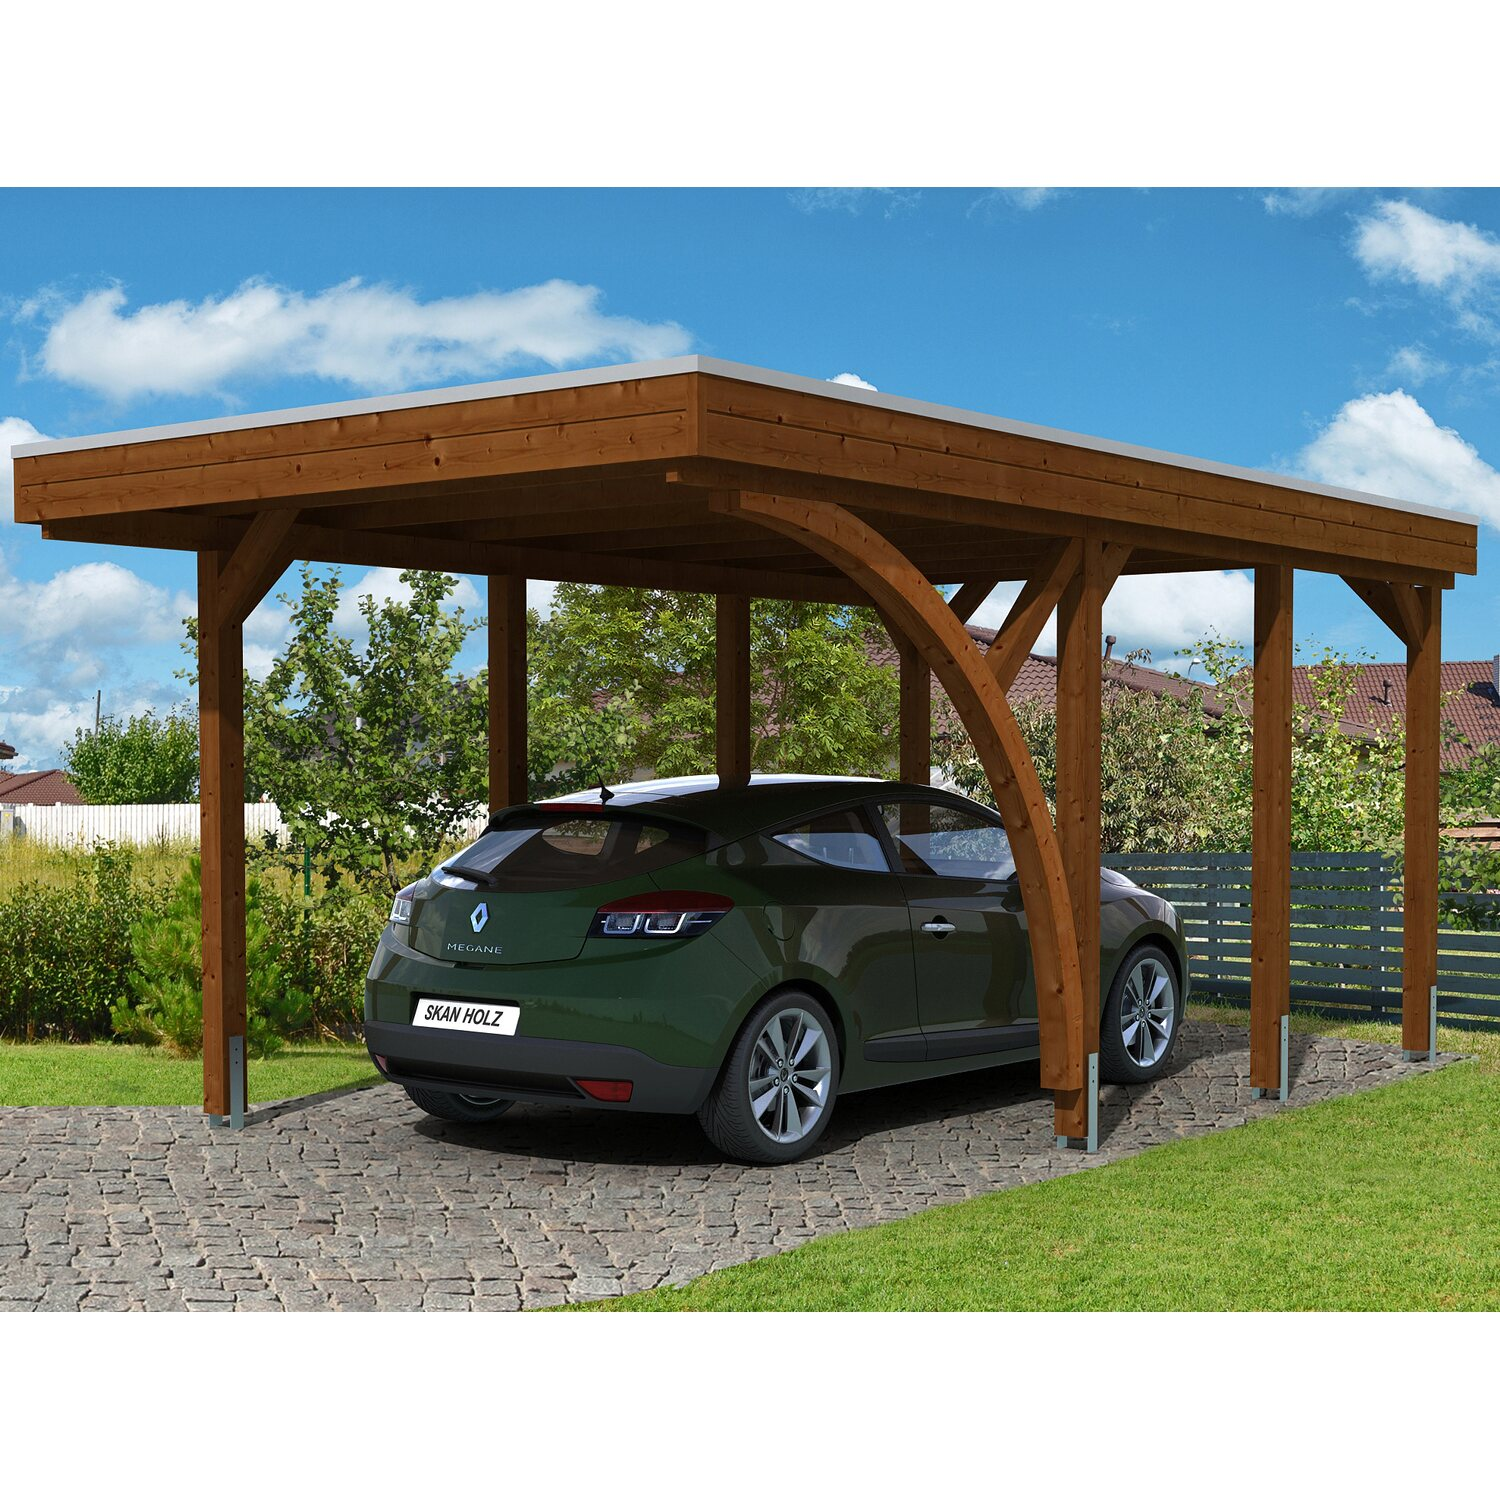 skan holz carport friesland set 5 314 cm x 555 cm nussbaum kaufen bei obi. Black Bedroom Furniture Sets. Home Design Ideas